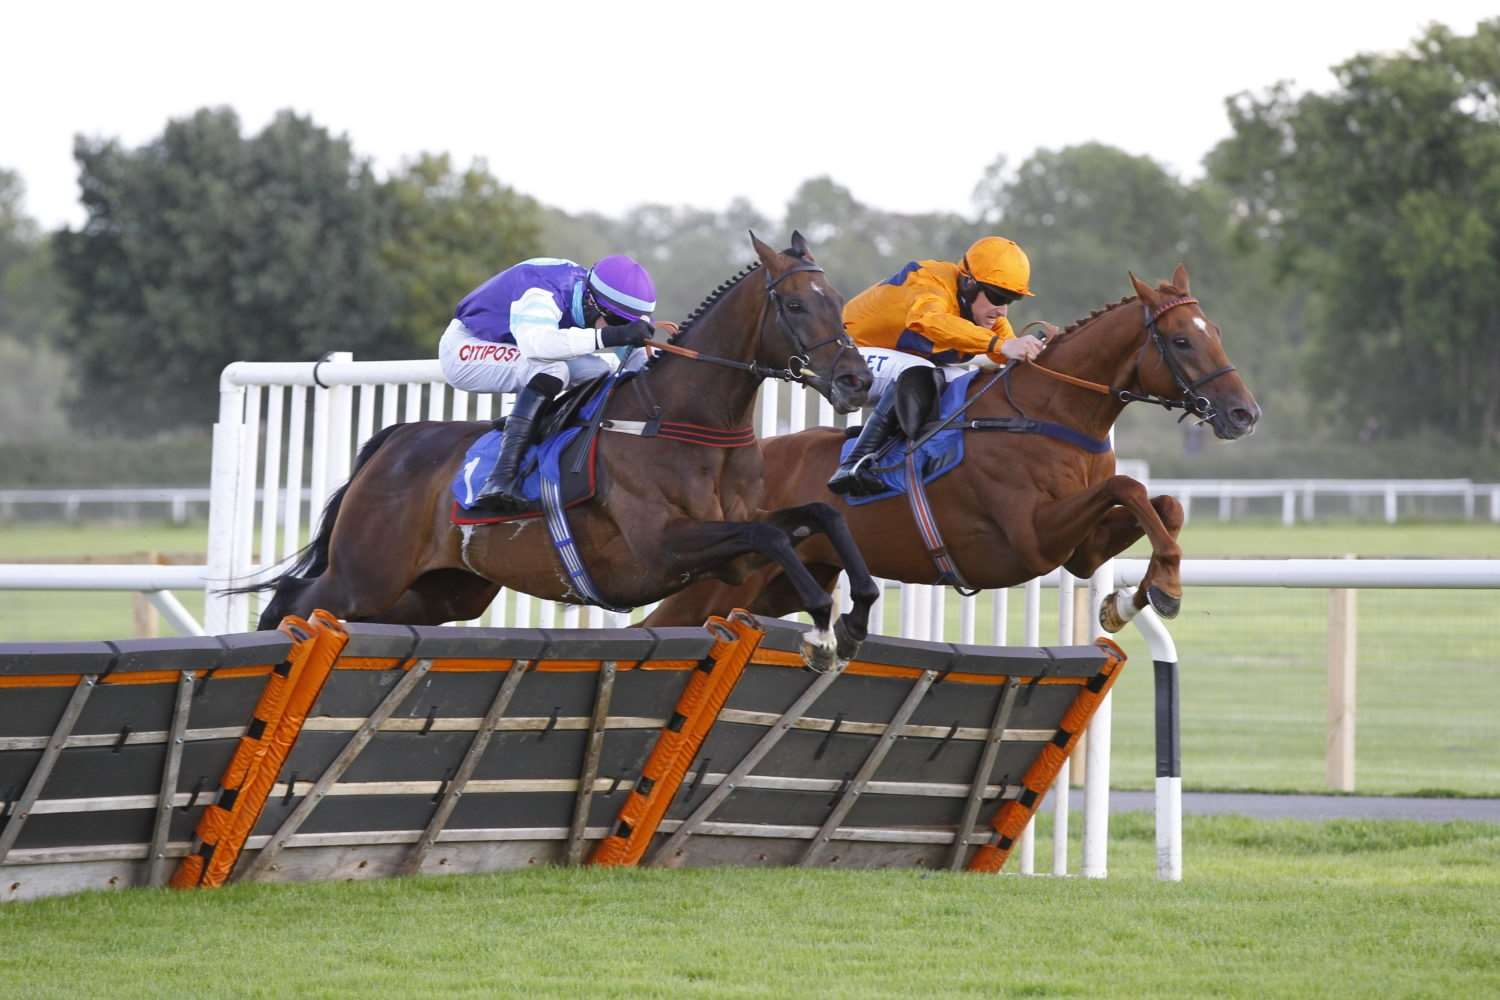 Jamacho (right) is challenged by Highly Prized at the final flight of the Class 2 Pardy's Dairies Fresh Milk Deliveries Handicap Hurdle, the feature race of Stratford's meeting on Saturday. Photo: Steve Davies / www.sdphotos.co.uk